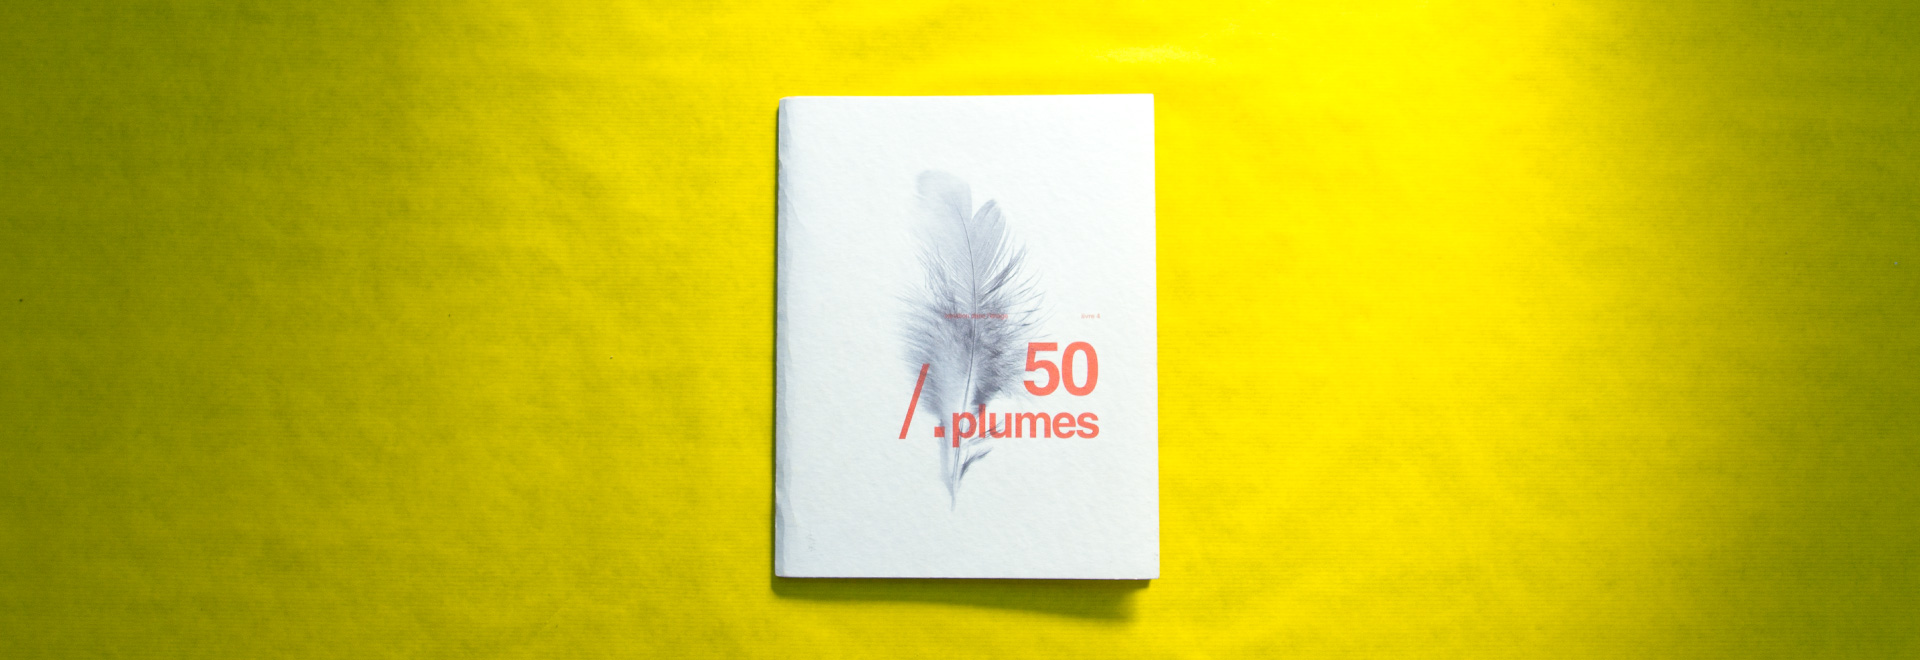 50plumes-1-edition